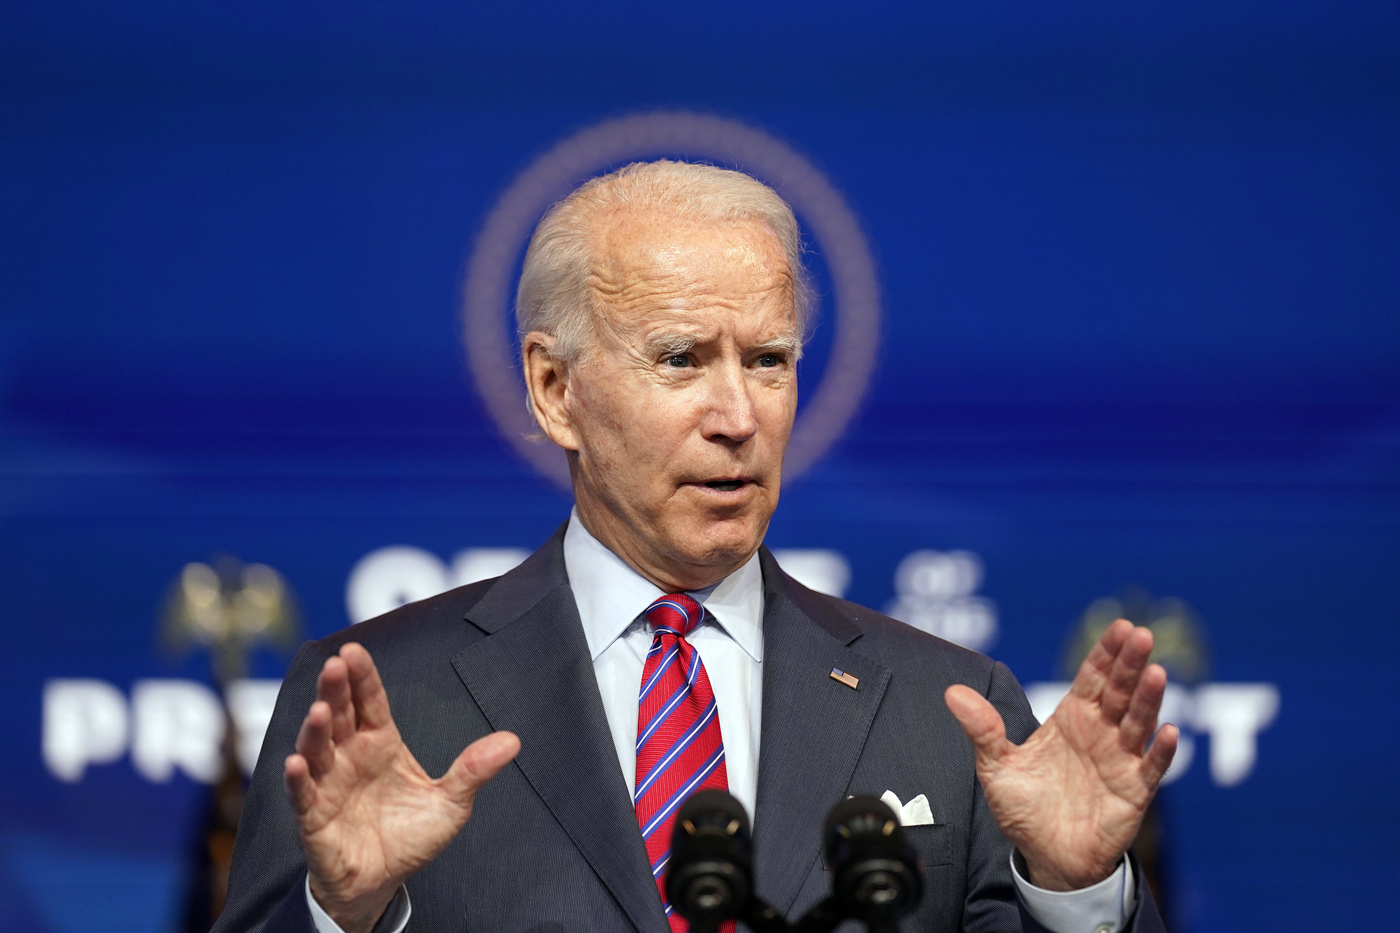 Usa, il presidente eletto Joe Biden al teatro The Queen di Wilmington